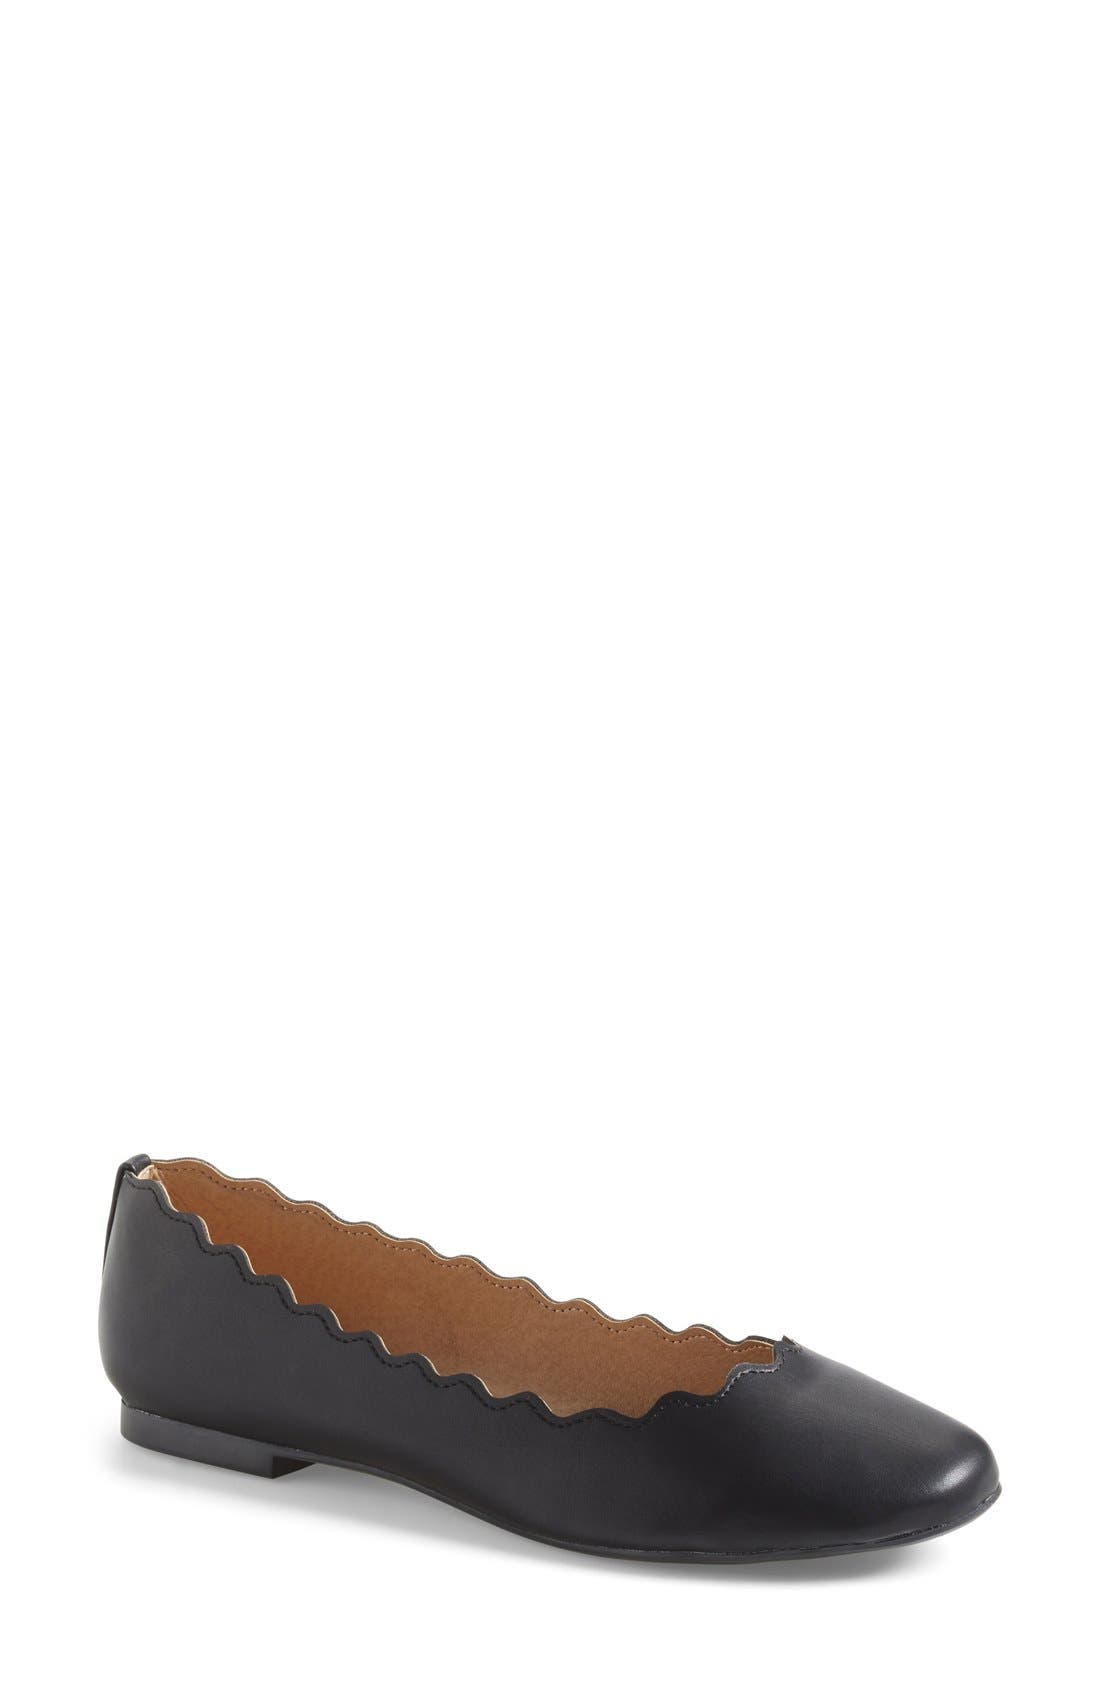 'Toffy' Ballet Flat,                         Main,                         color, 001